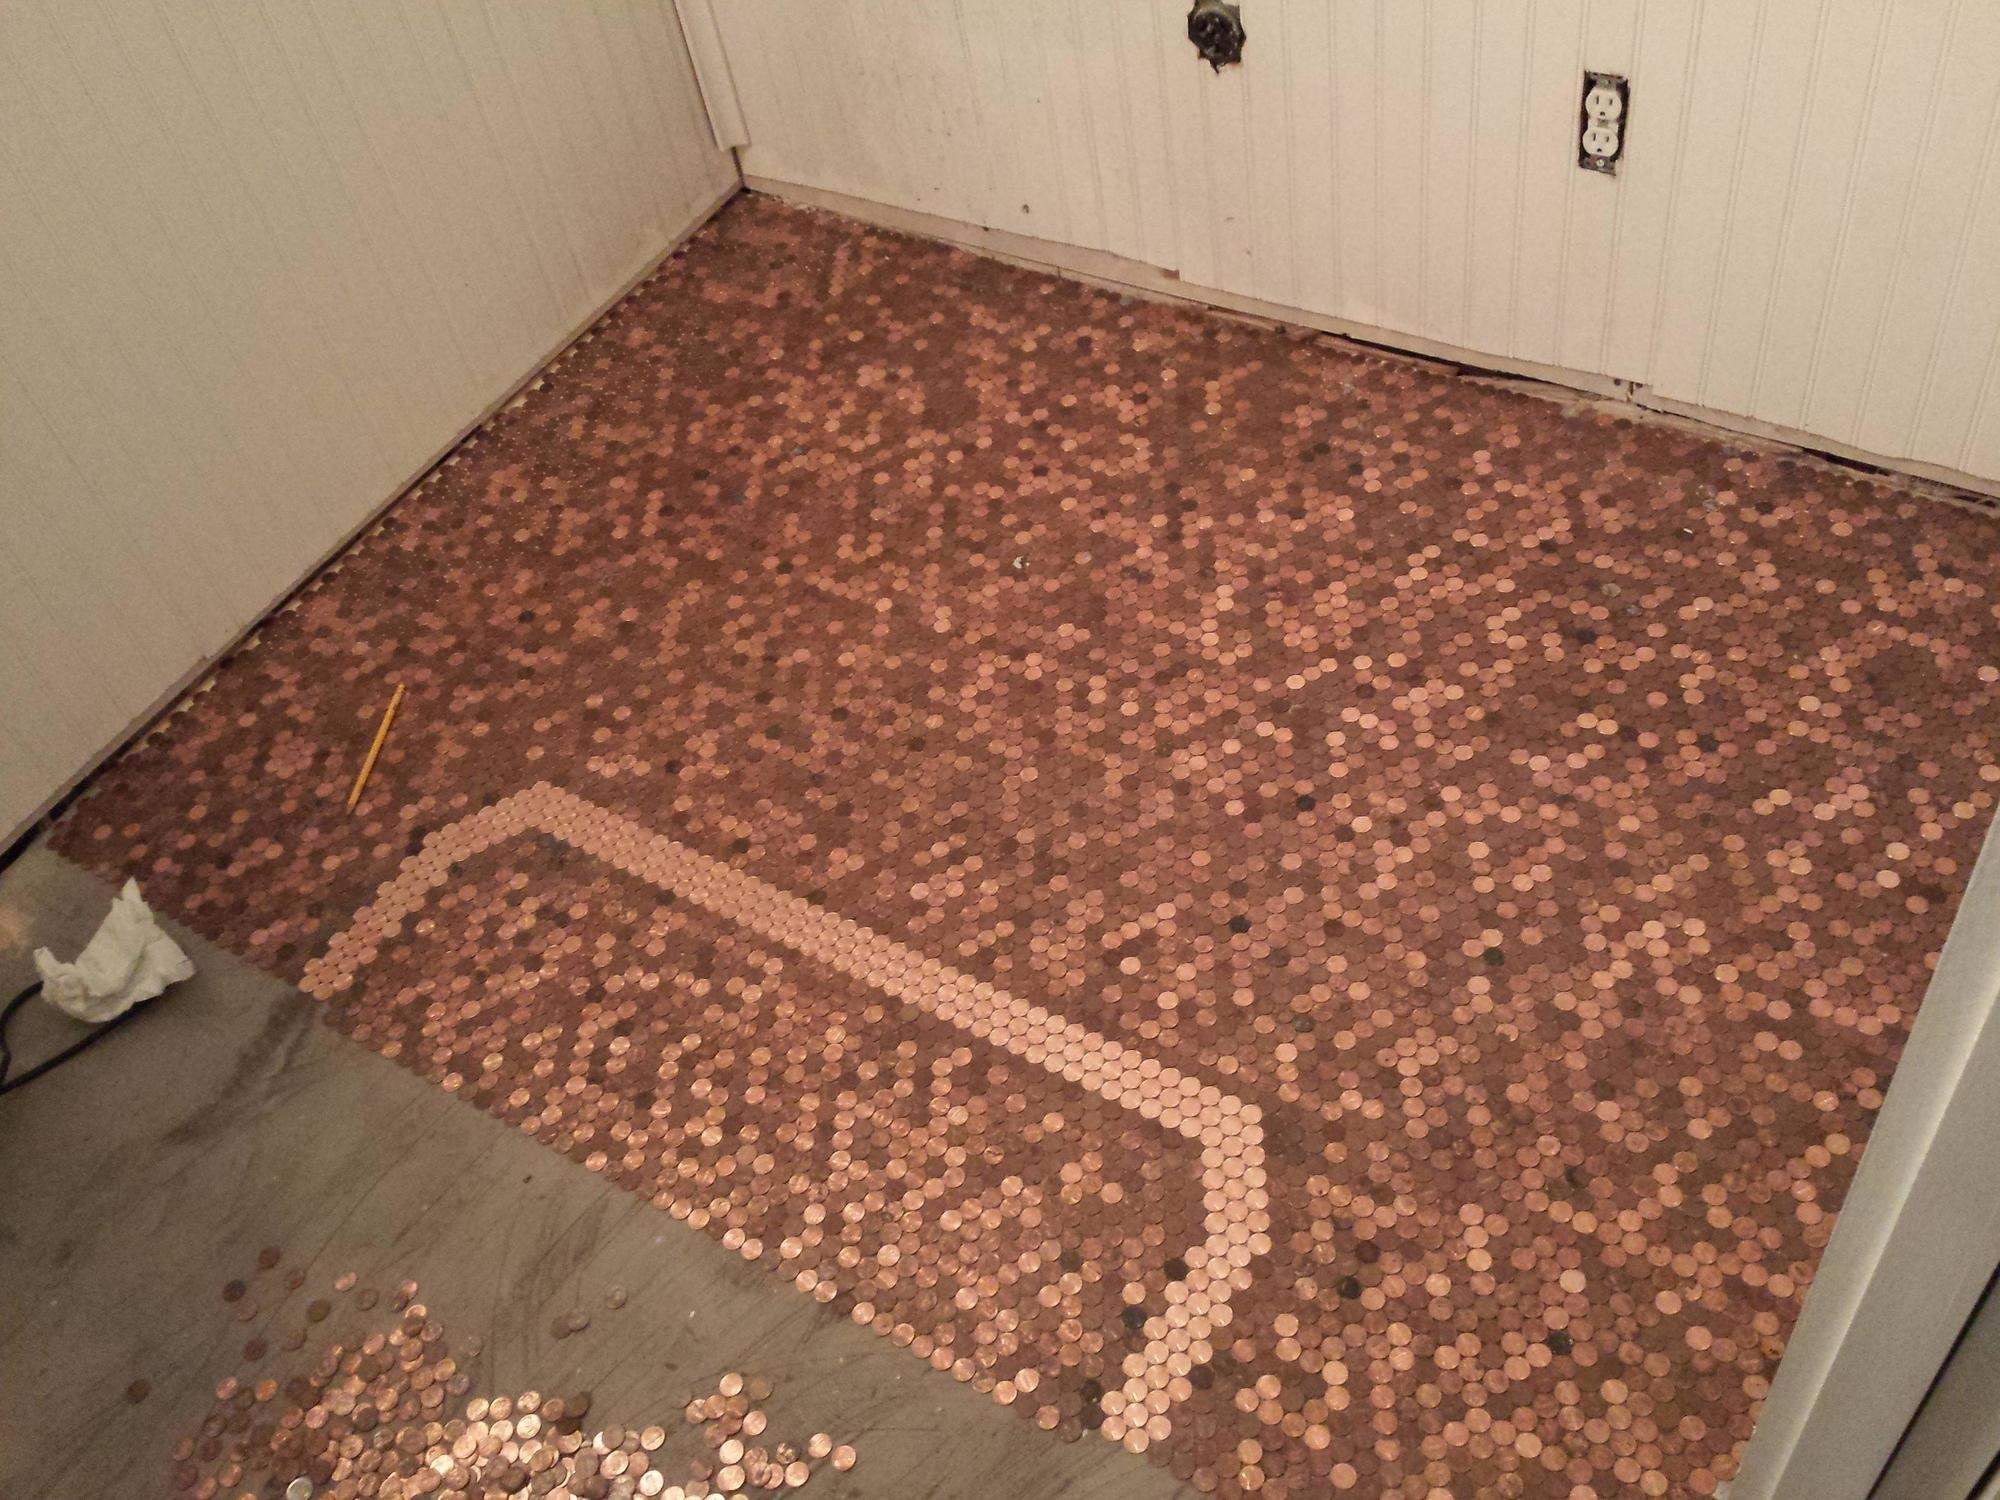 He made an awesome penny floor out of old pennies you can too now you can